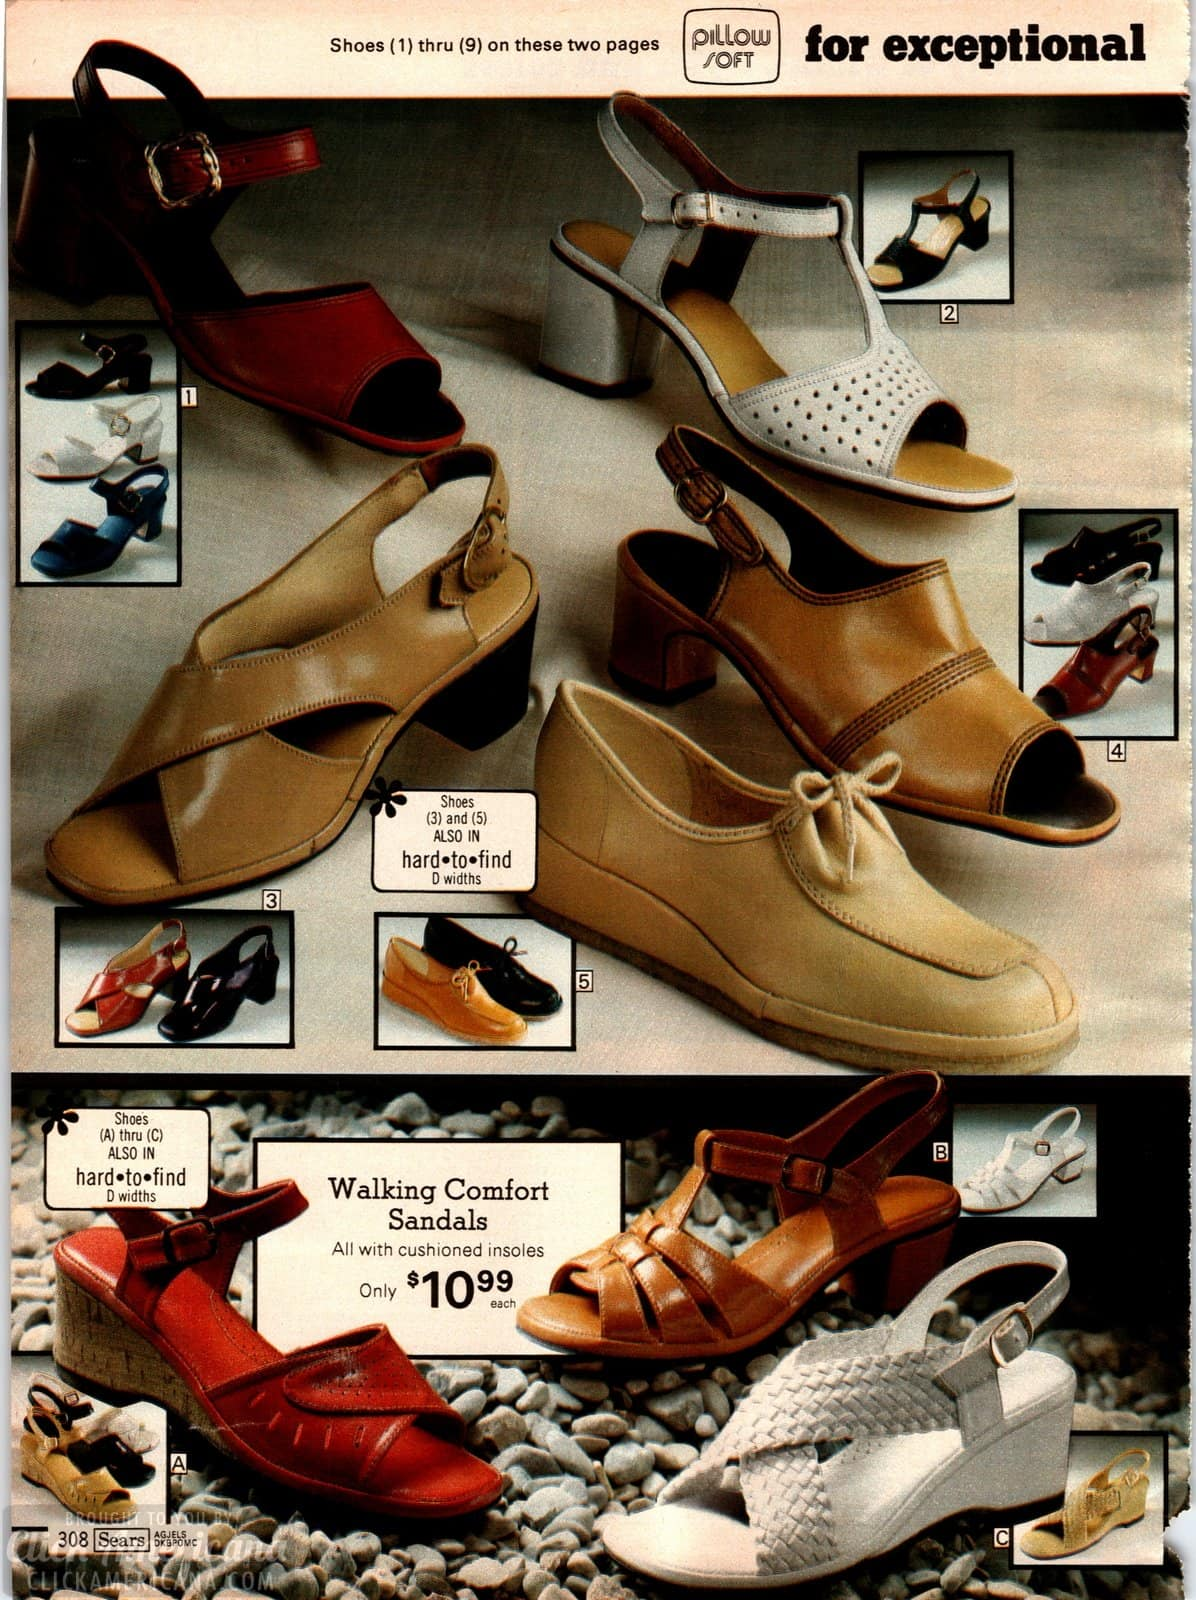 Walking sandals for women in the 70s - low square heels and cork wedge soles